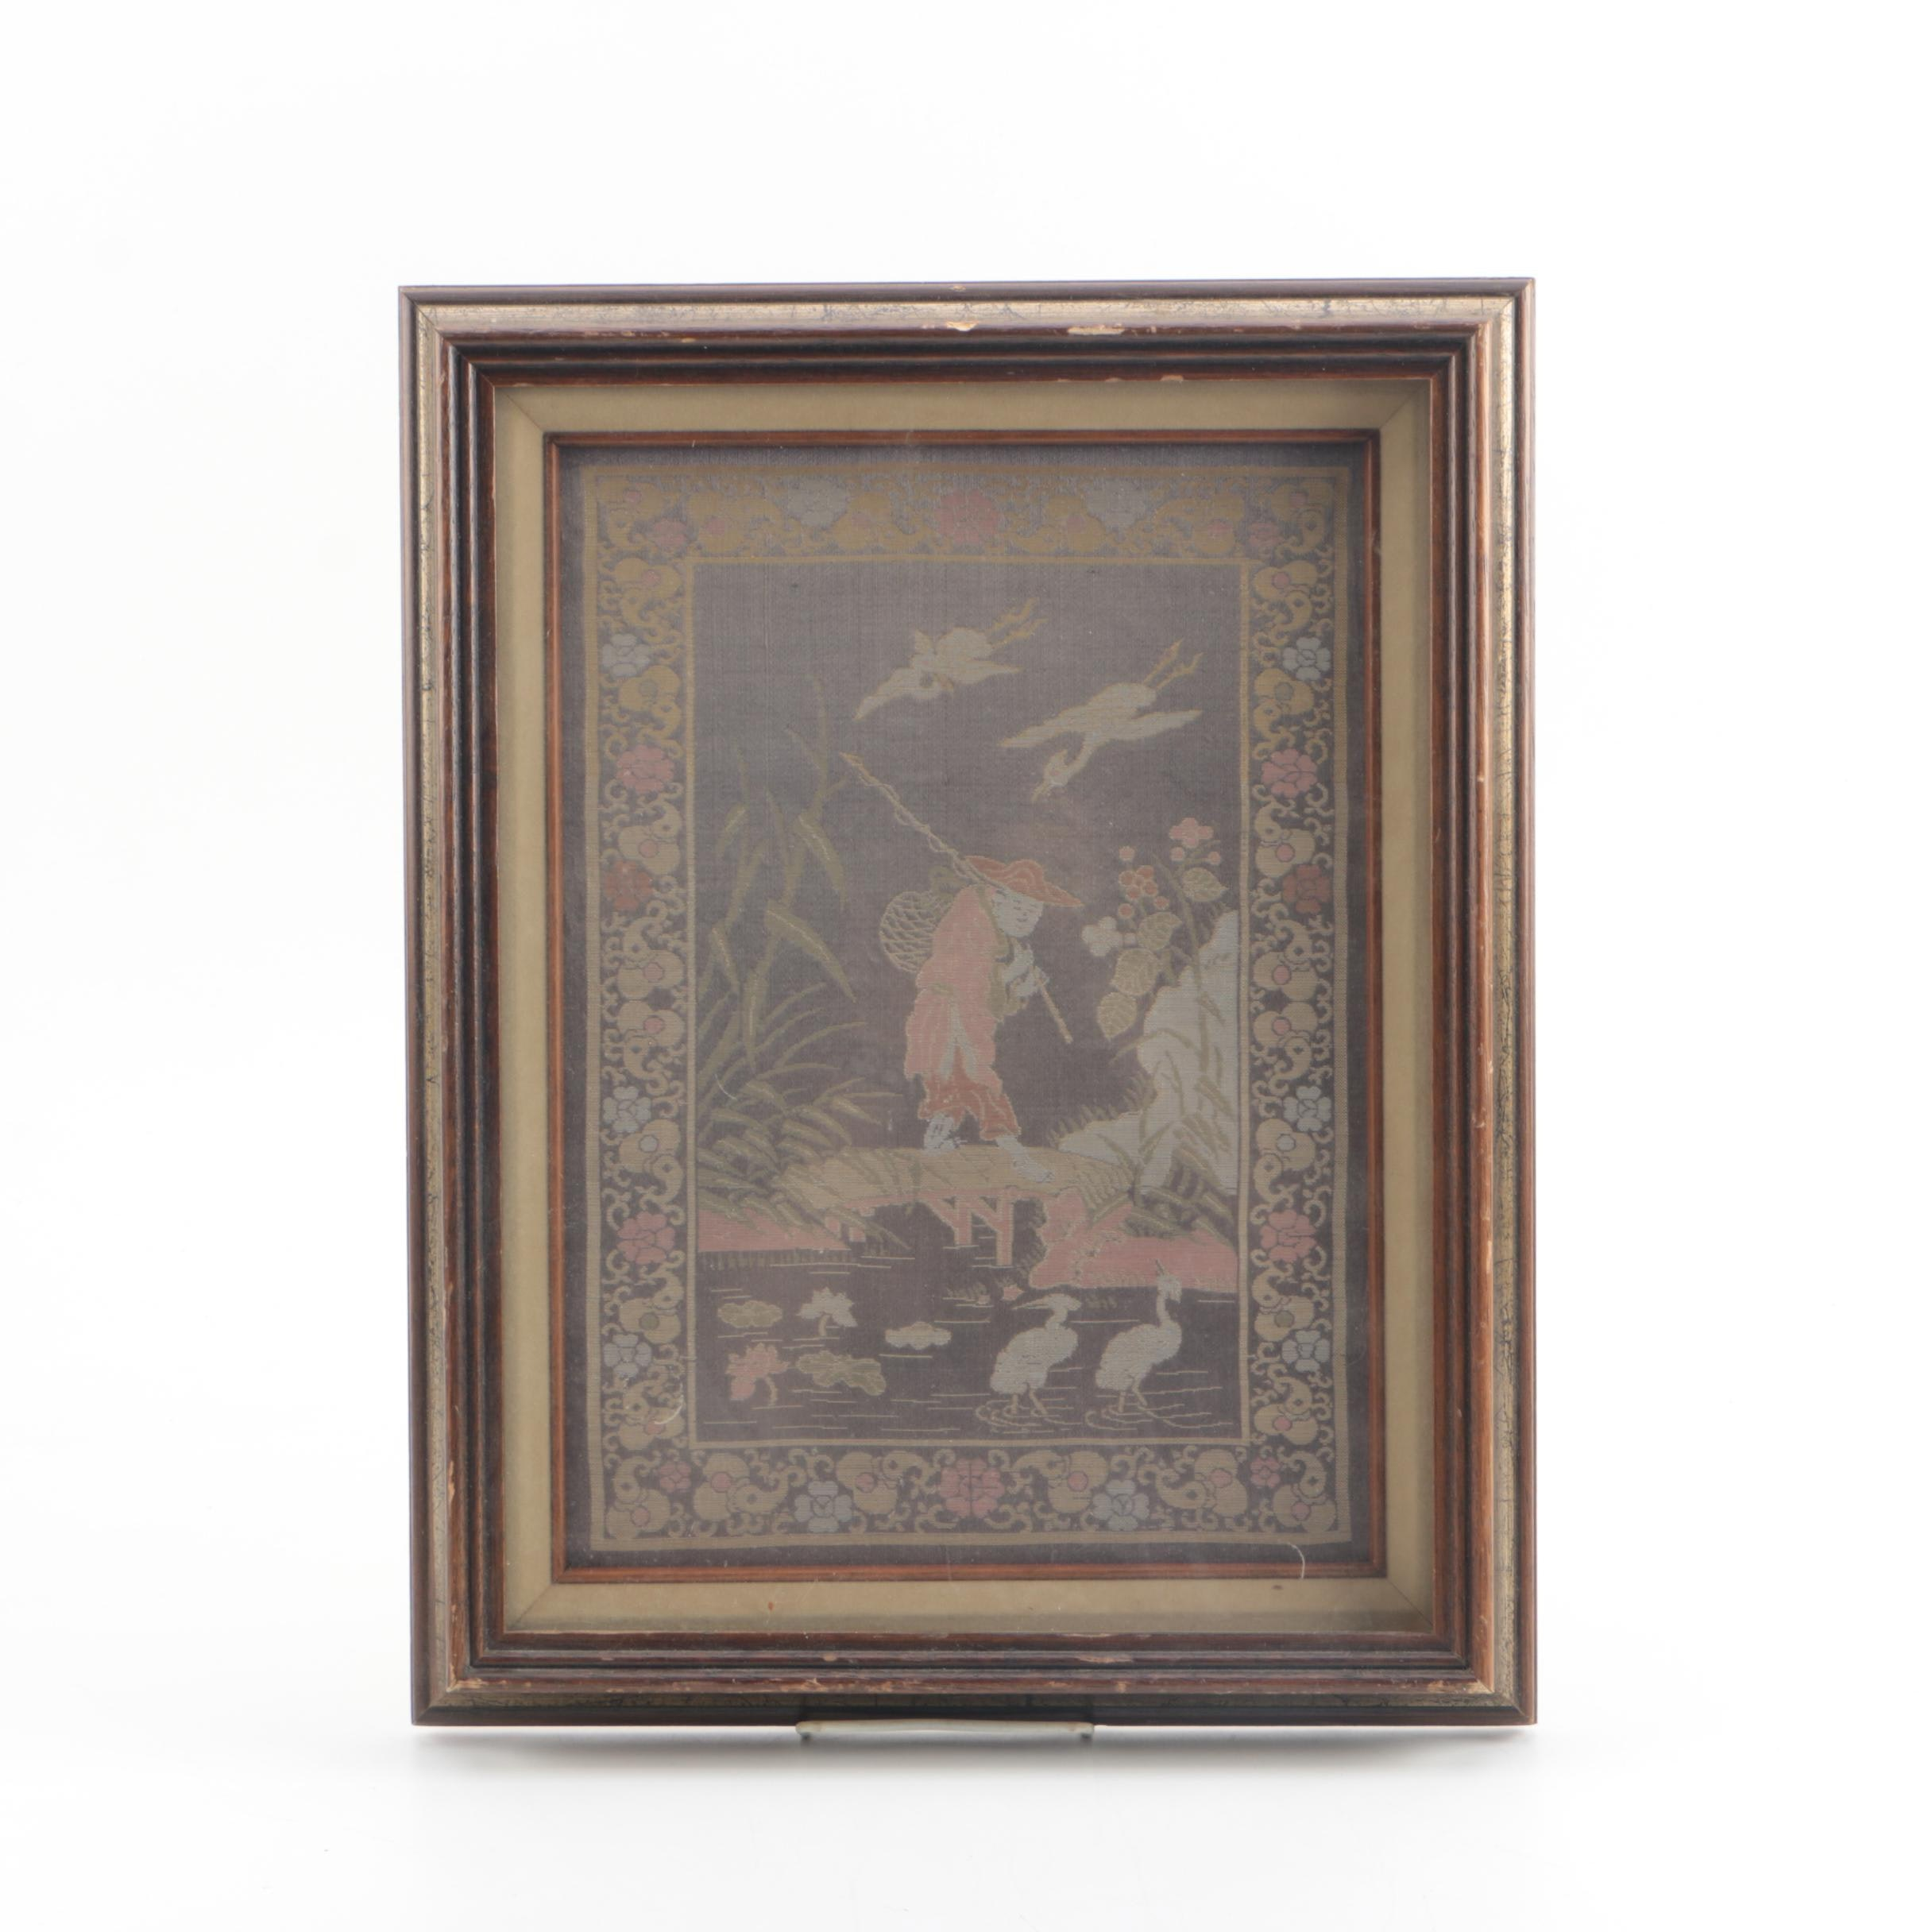 Chinese Framed Woven Textile